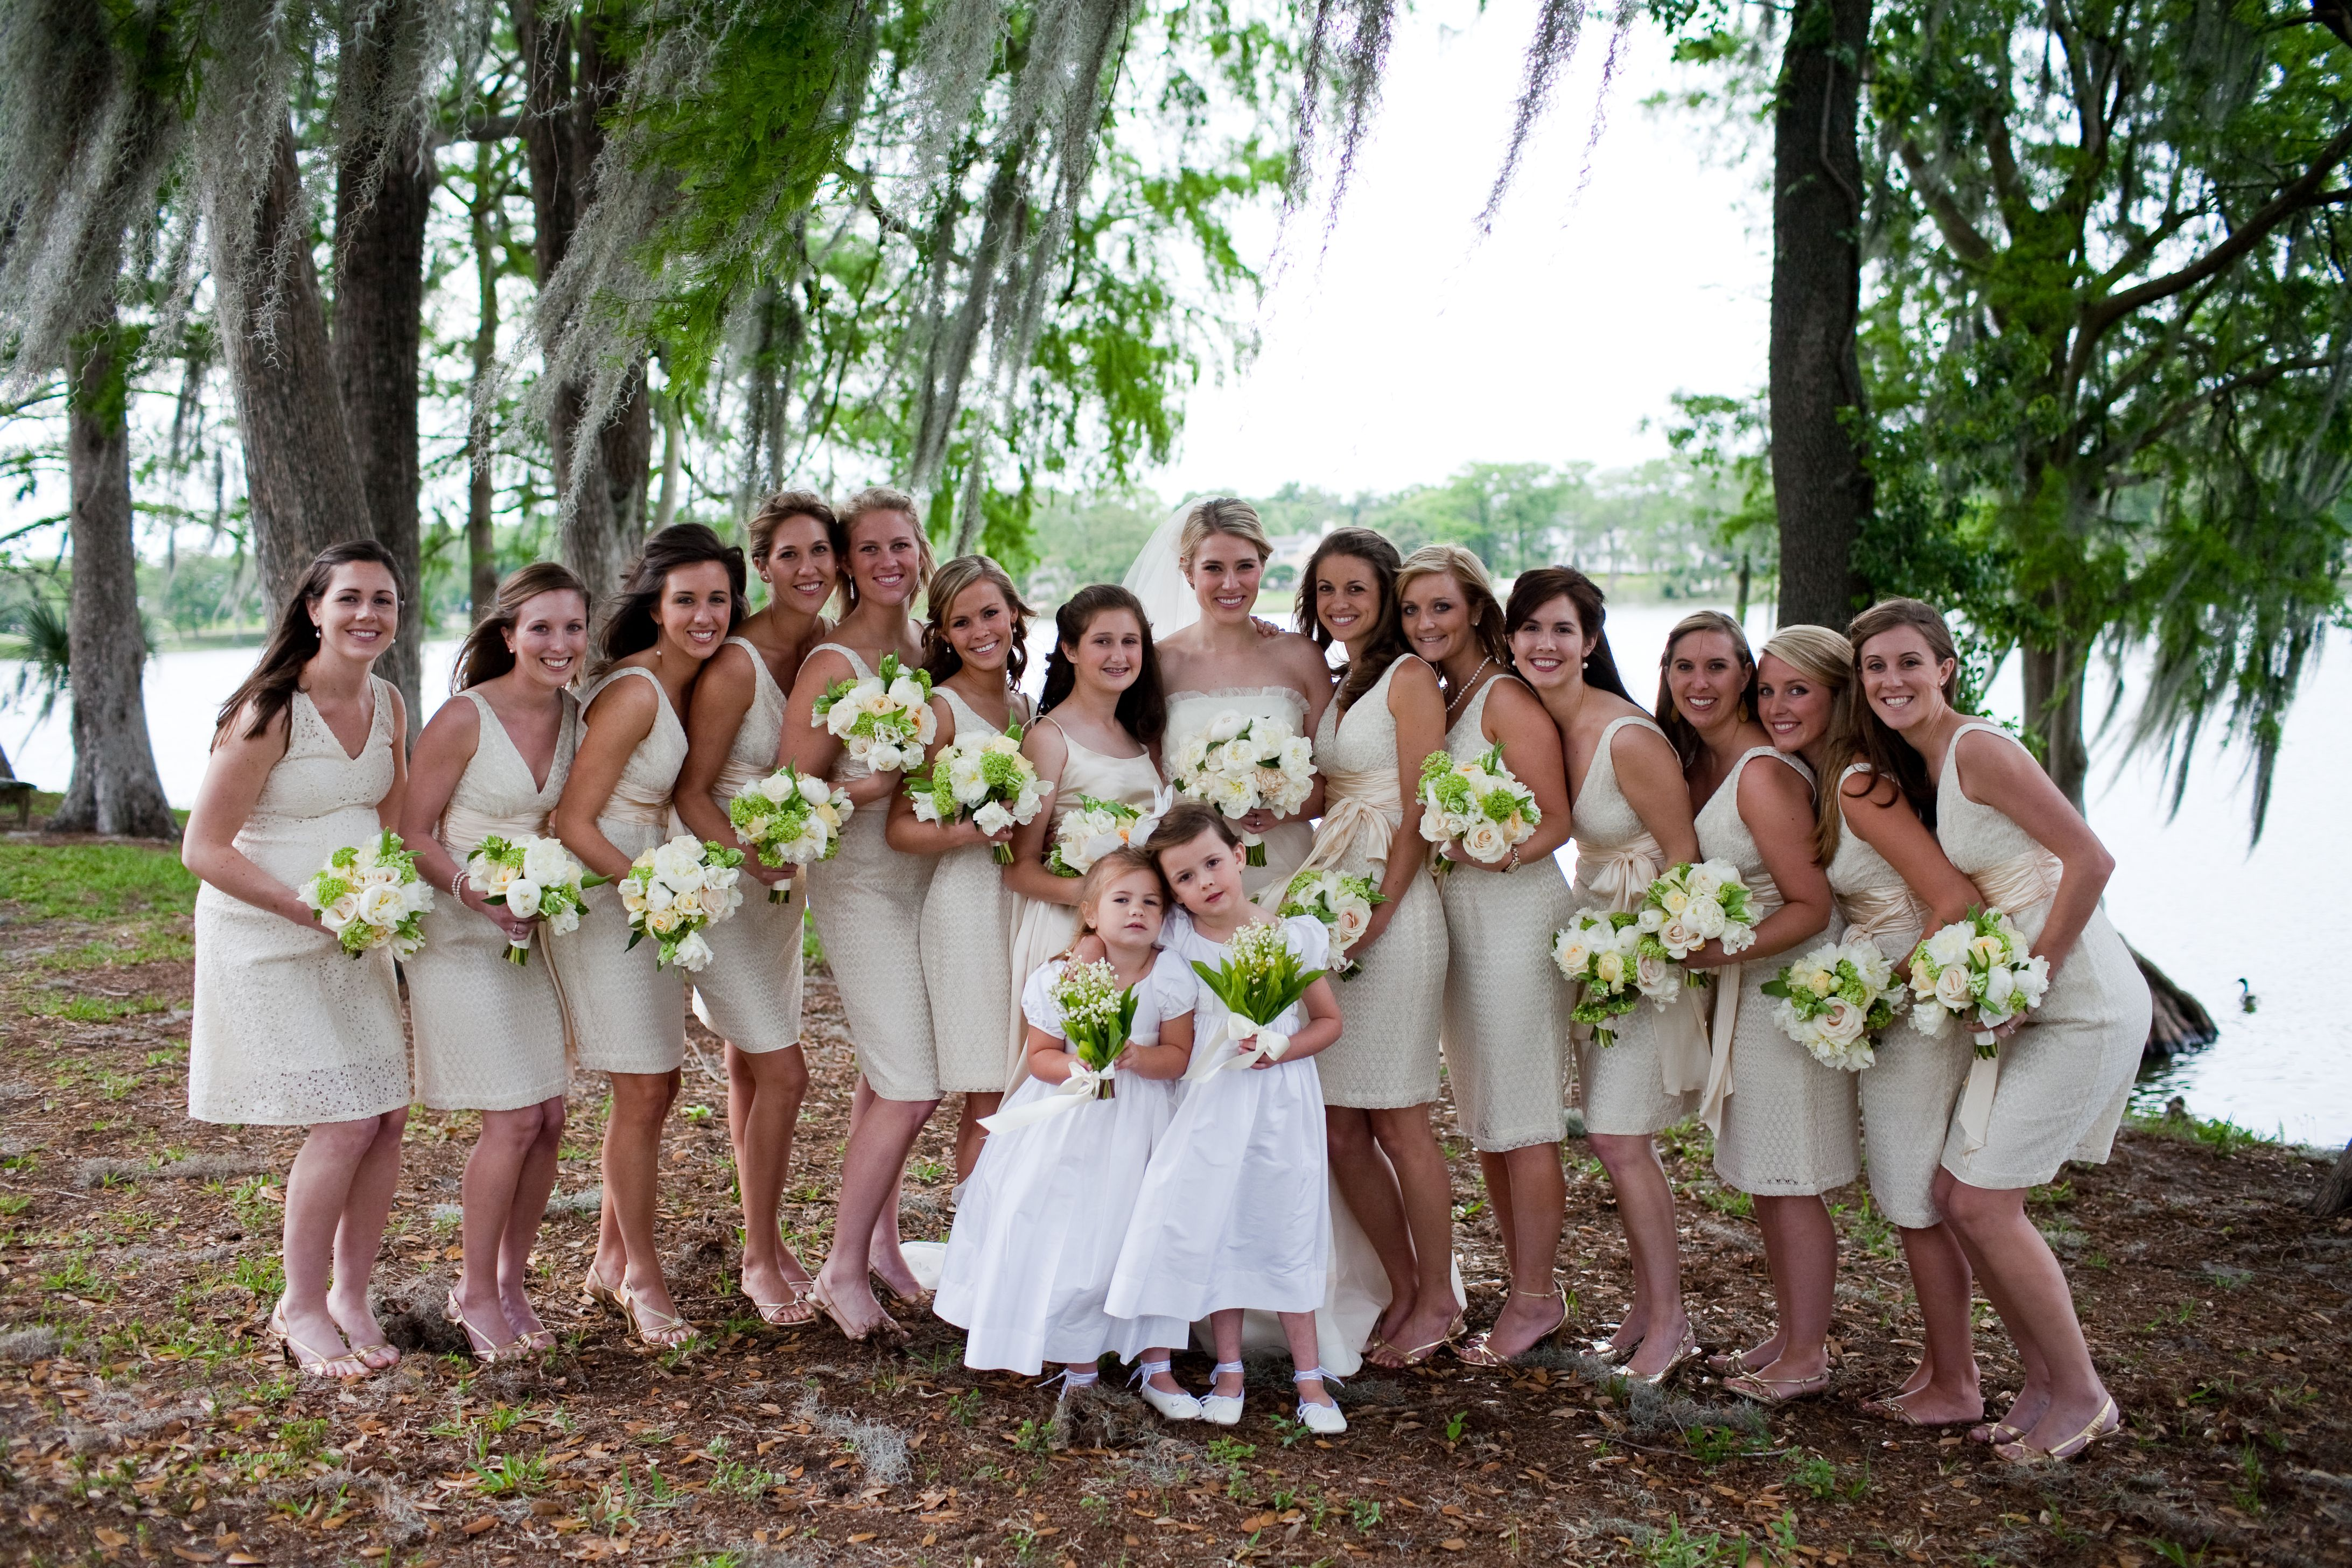 A wedding palette of spring greens, ivory and white. Bridesmaids in ivory lace dresses carry bouquets of peonies, garden roses and tulips, and flower girls hold bouquets of lily of the valley.